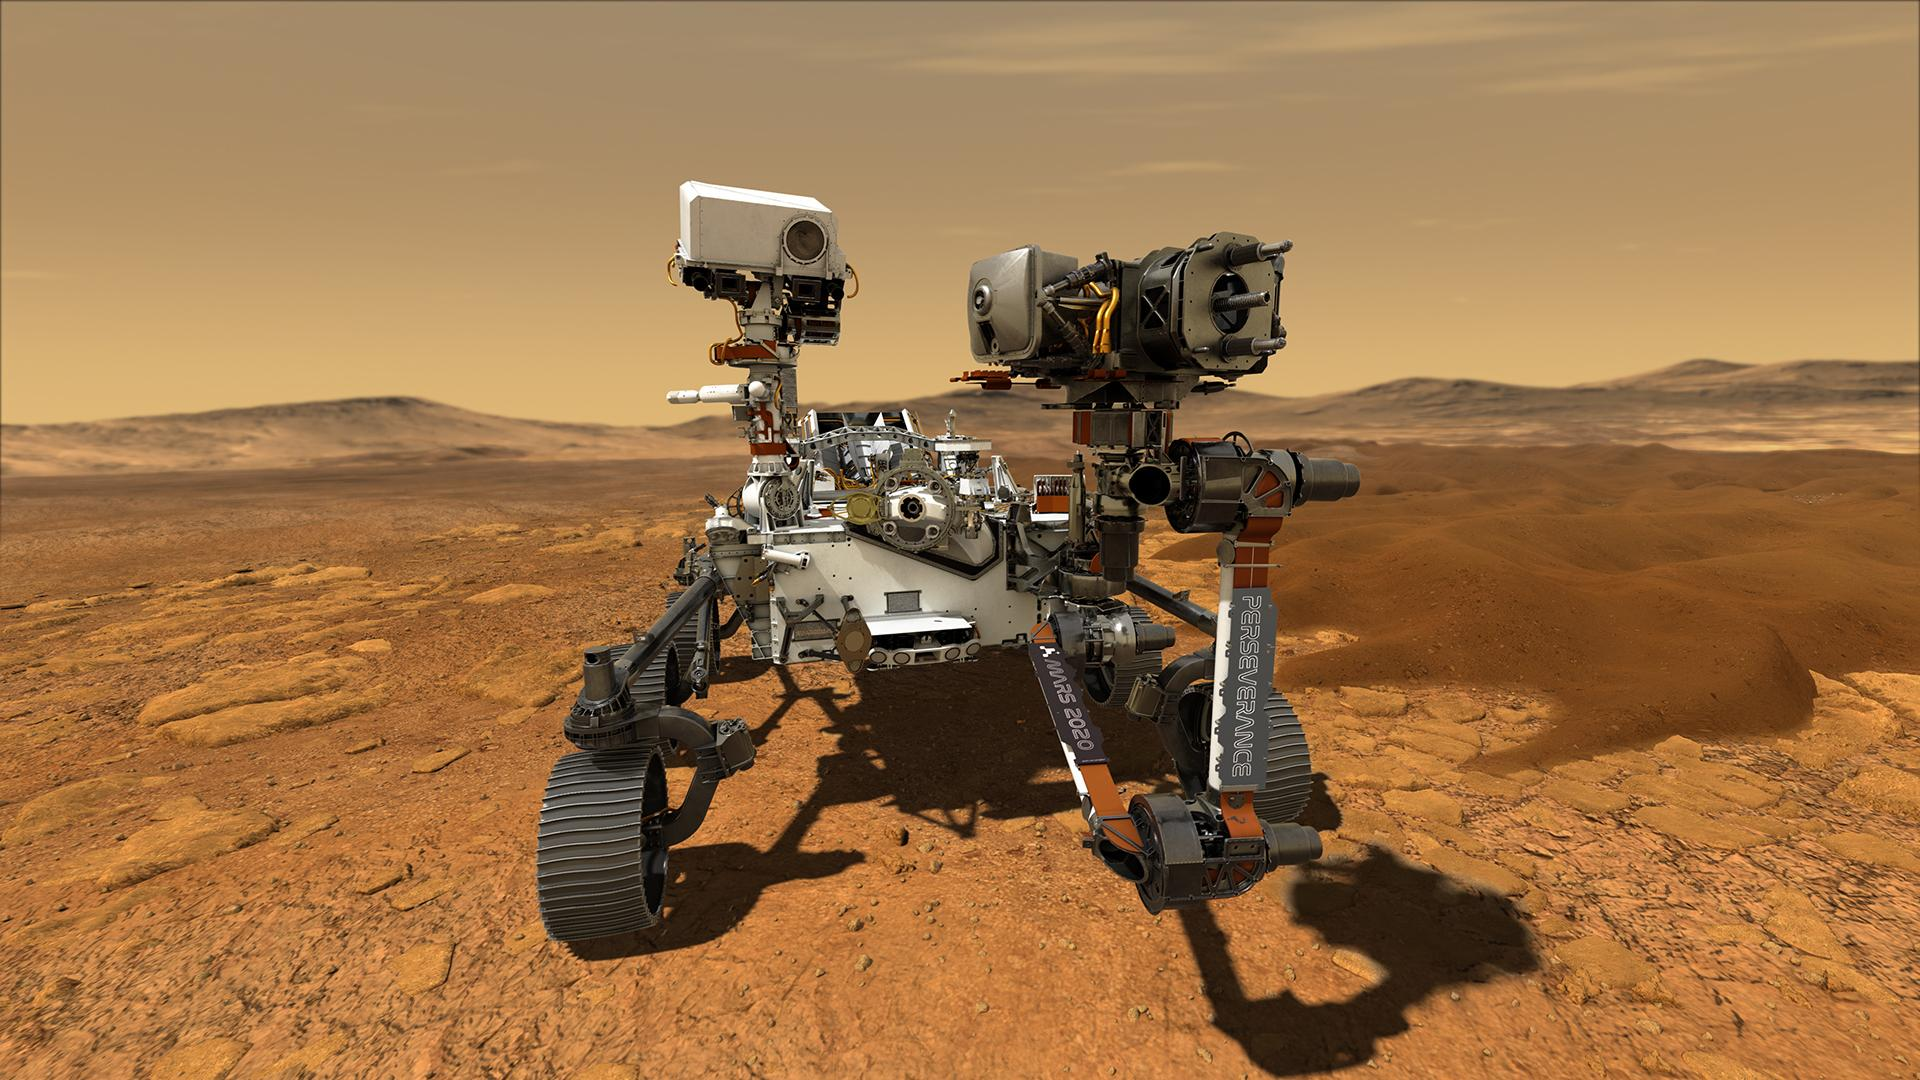 Artist's impression of the Perseverance rover on the surface of Mars